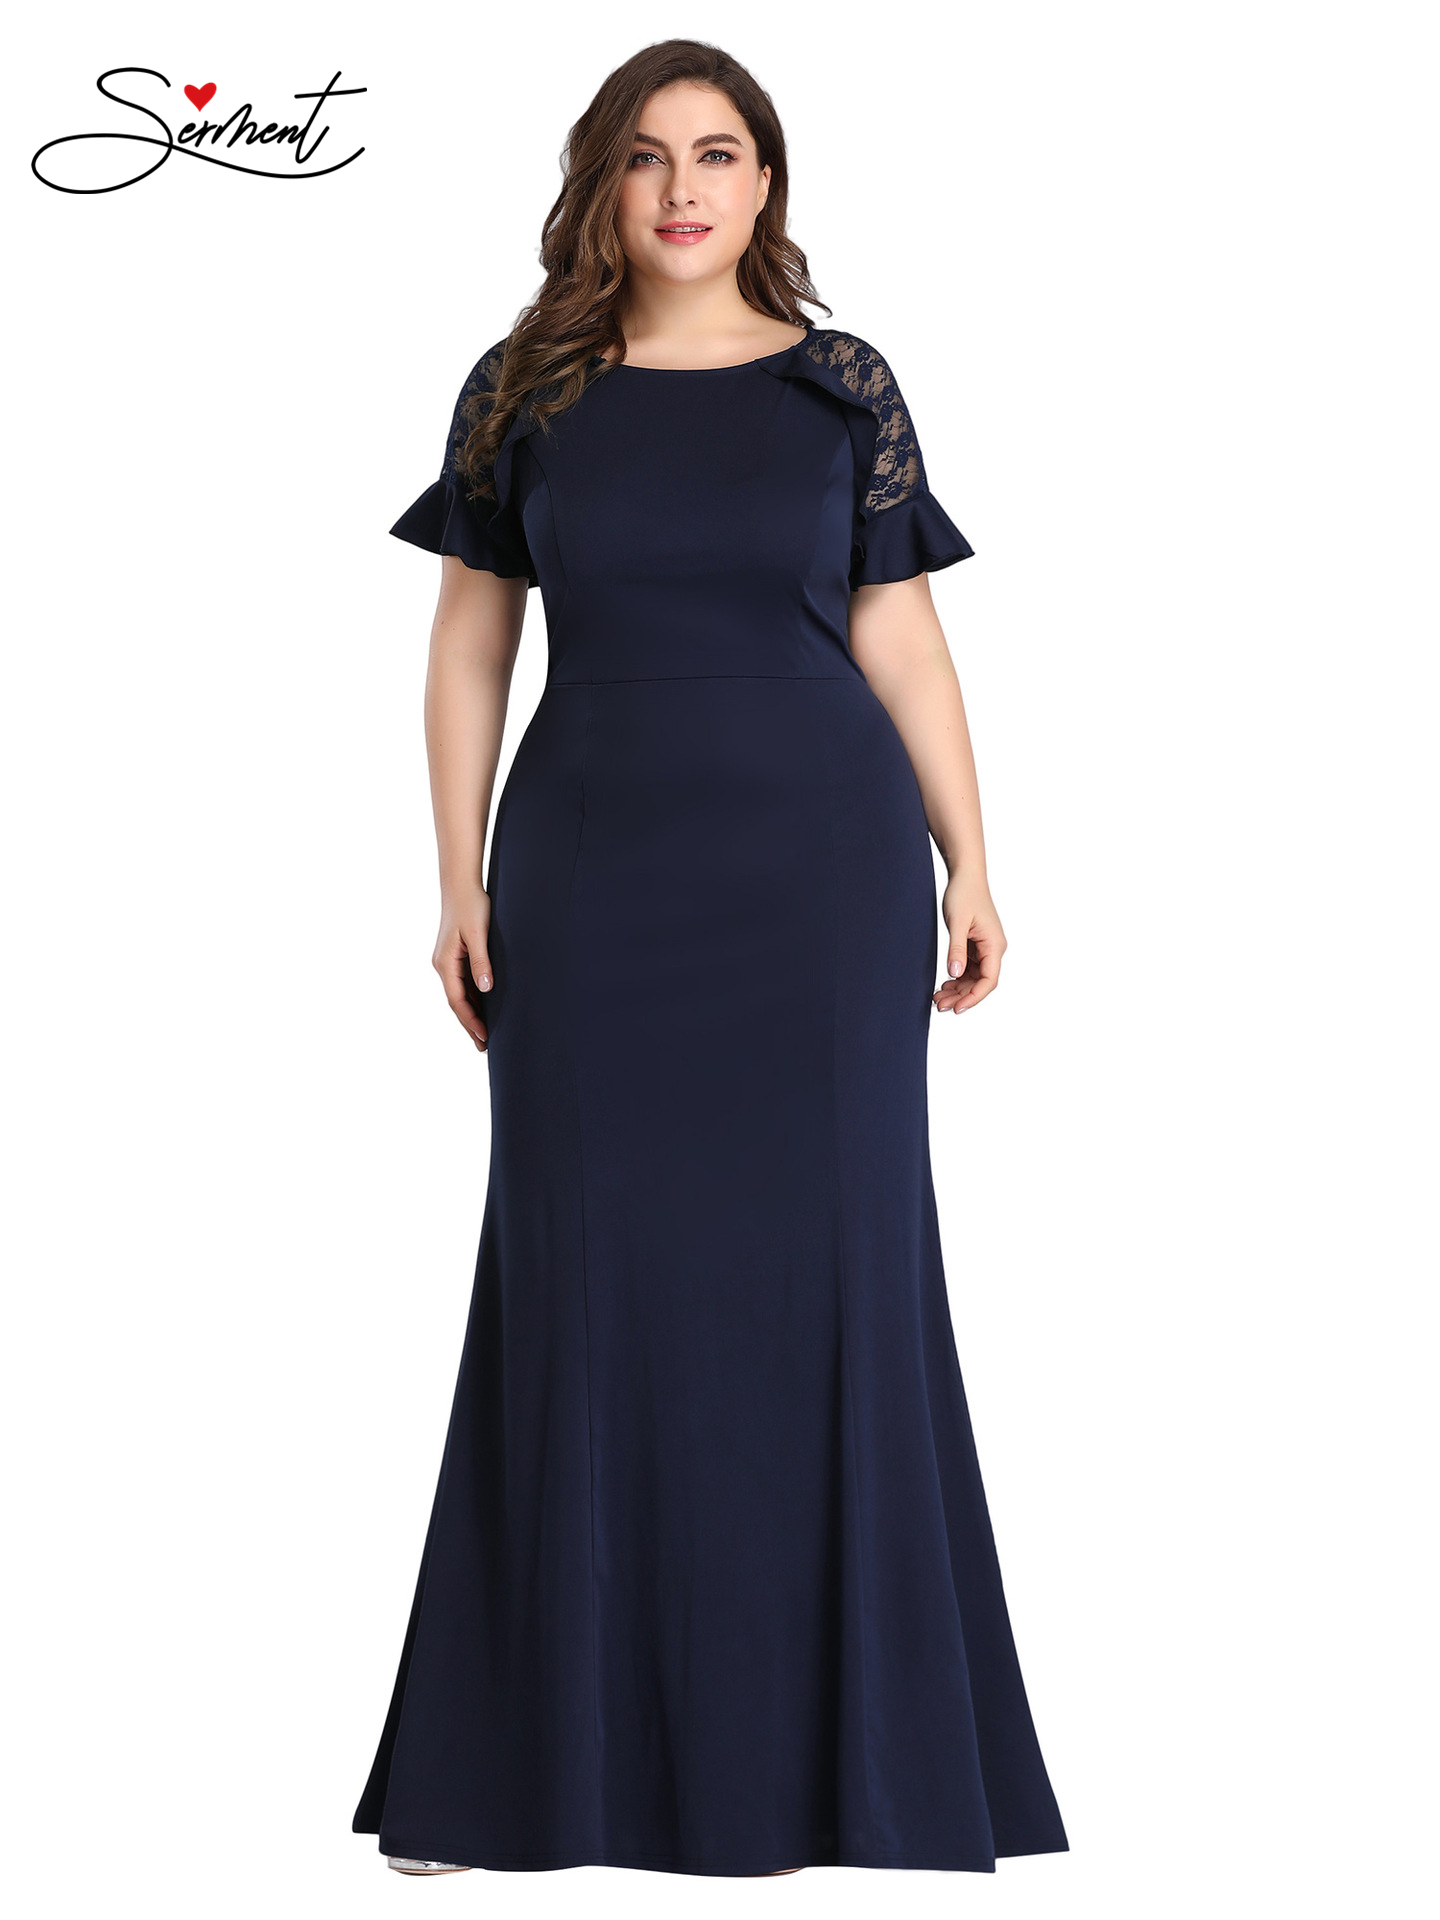 OLLYMURS New Elegant Woman Evening Gown High-quality Fabric Plus Size Chiffon Word Split Slit Long Slim Evening Dress